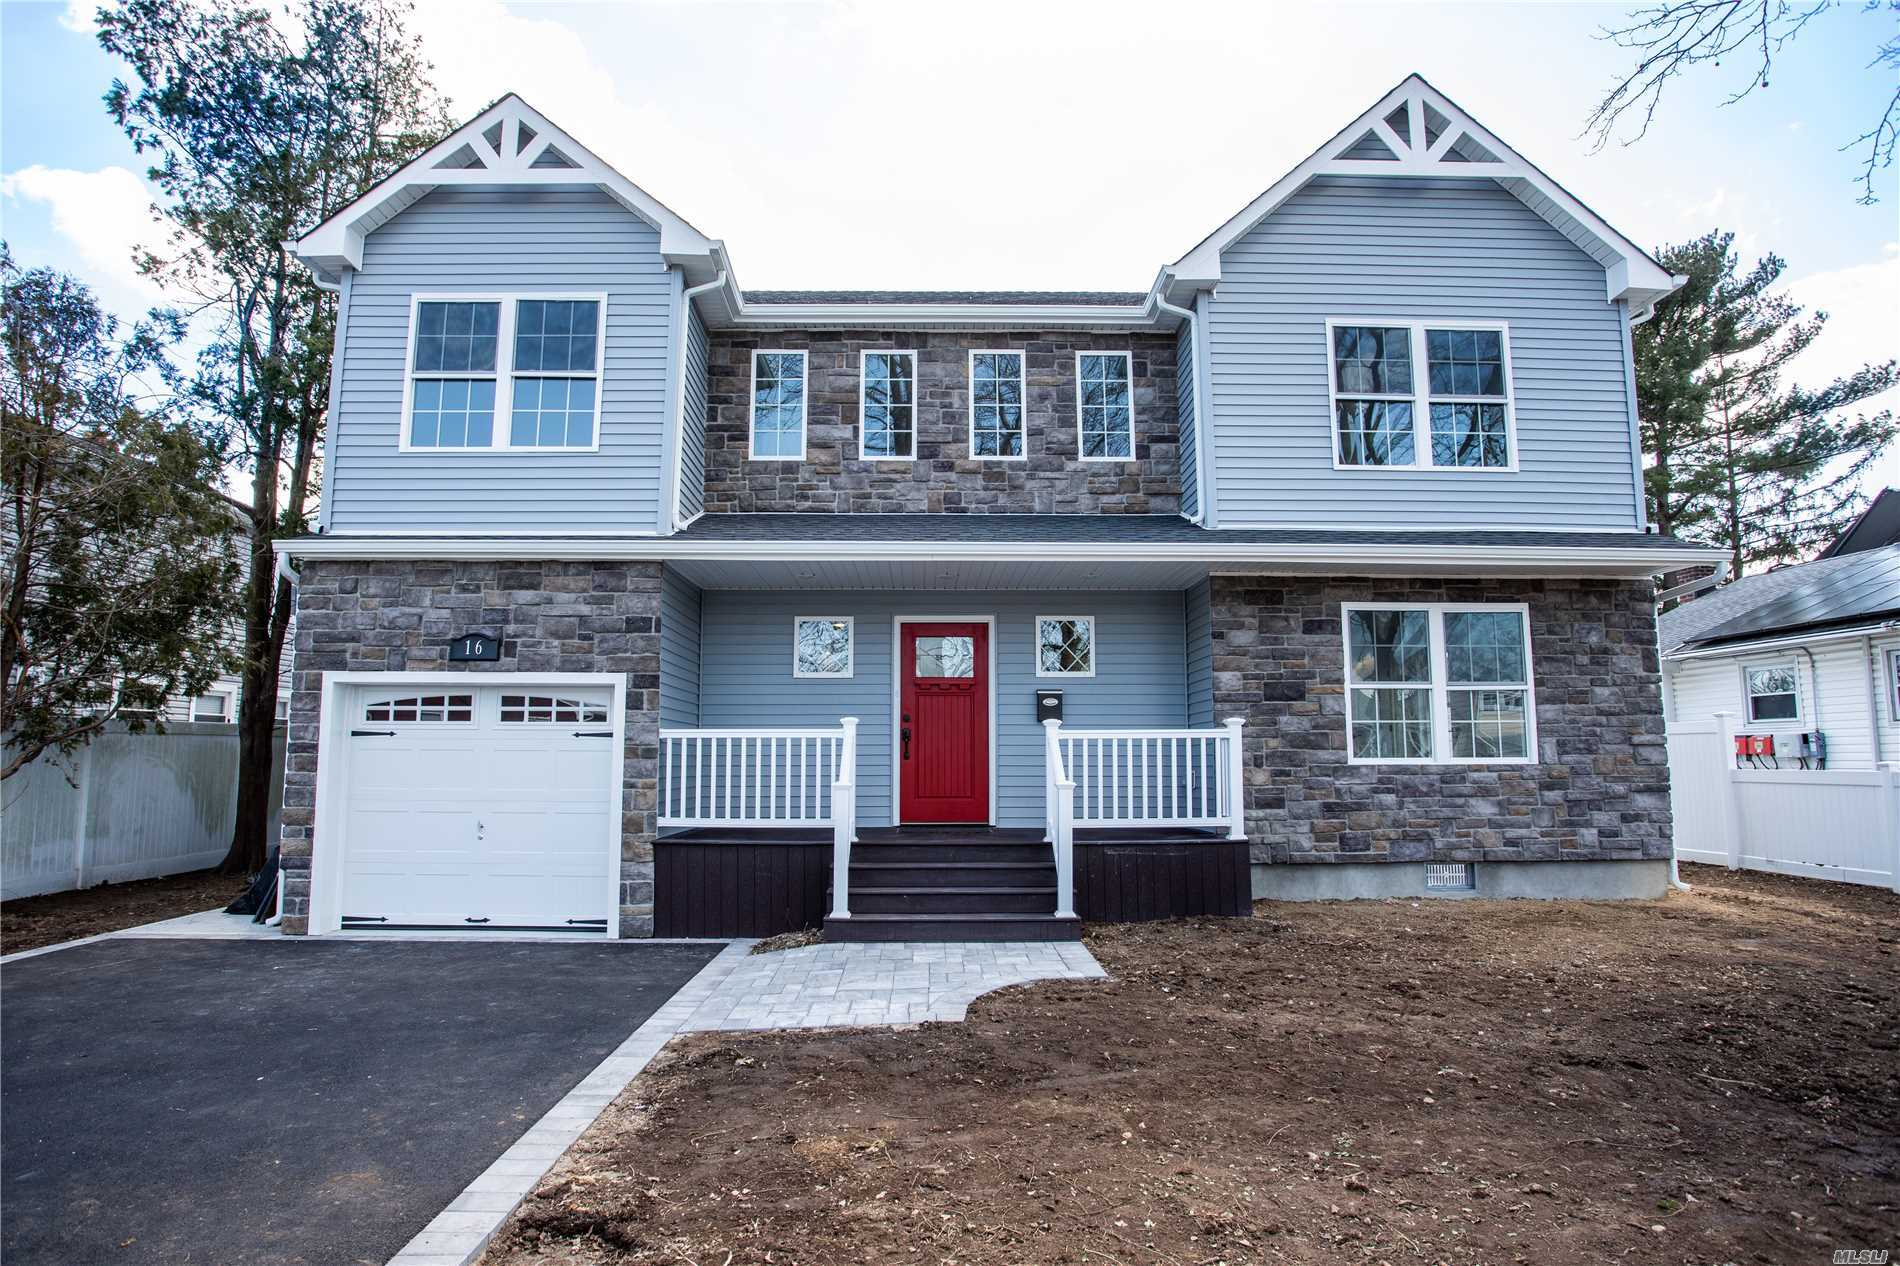 New Construction With Beautiful Layout, Open Concept Entry Into Living room With Fireplace Leading Into Kitchen First Floor Has Good Size Bedroom + Guest room, 2nd Floor Has Master bed and 3 Other Bedrooms With Full Bath